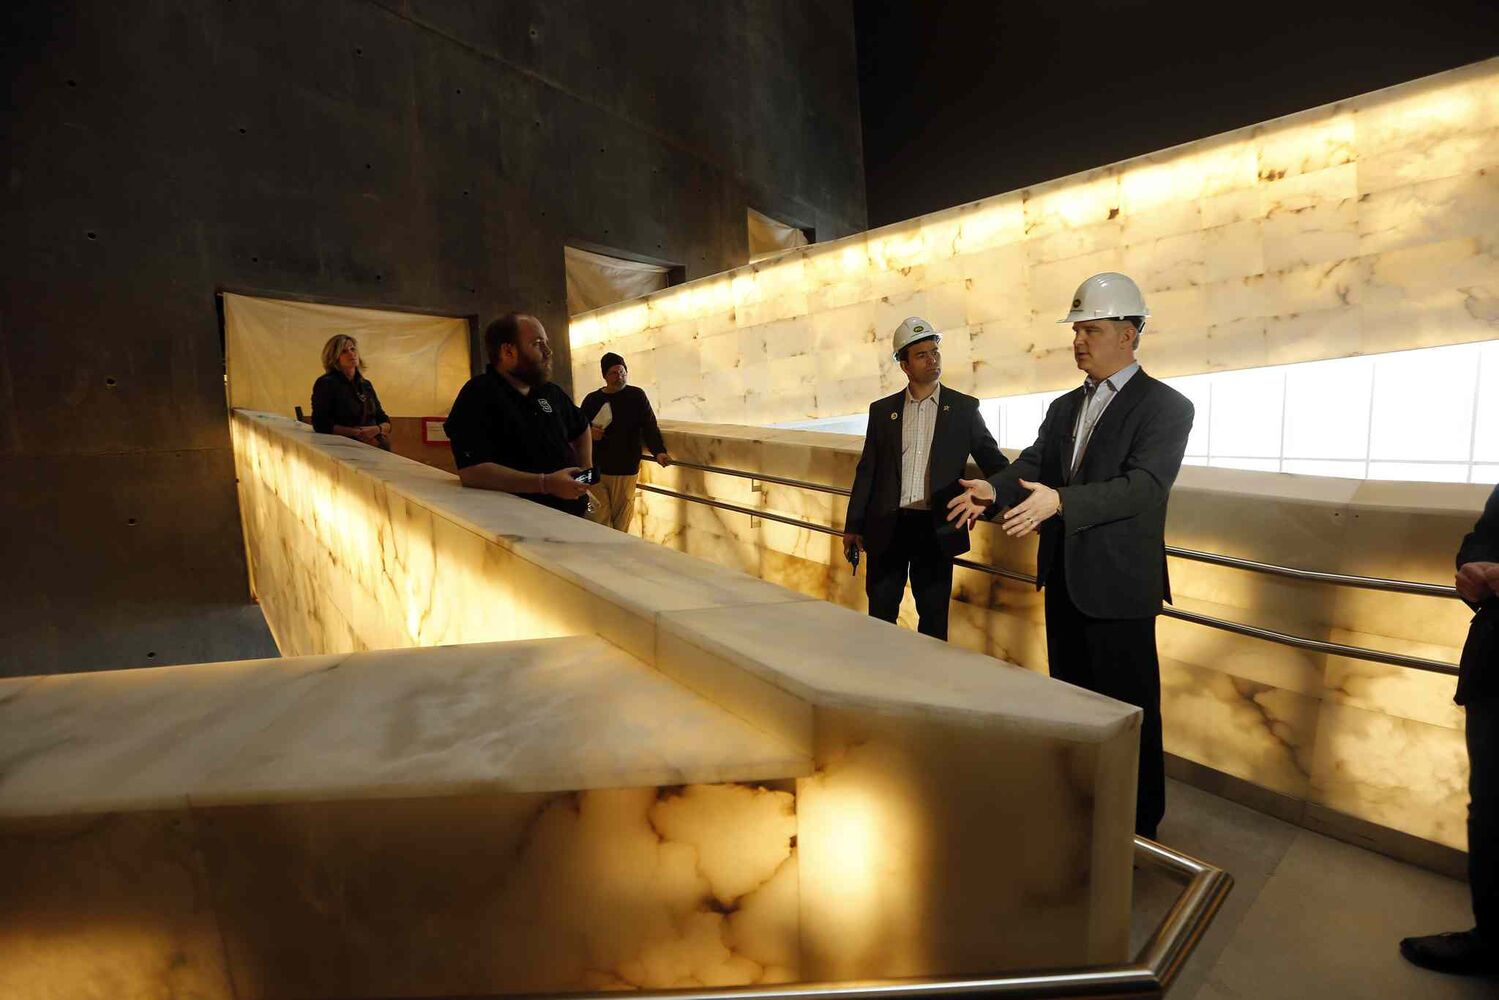 Todd Craigen, district manager with PCL, explains the Hall of Hope. (KEN GIGLIOTTI / WINNIPEG FREE PRESS)